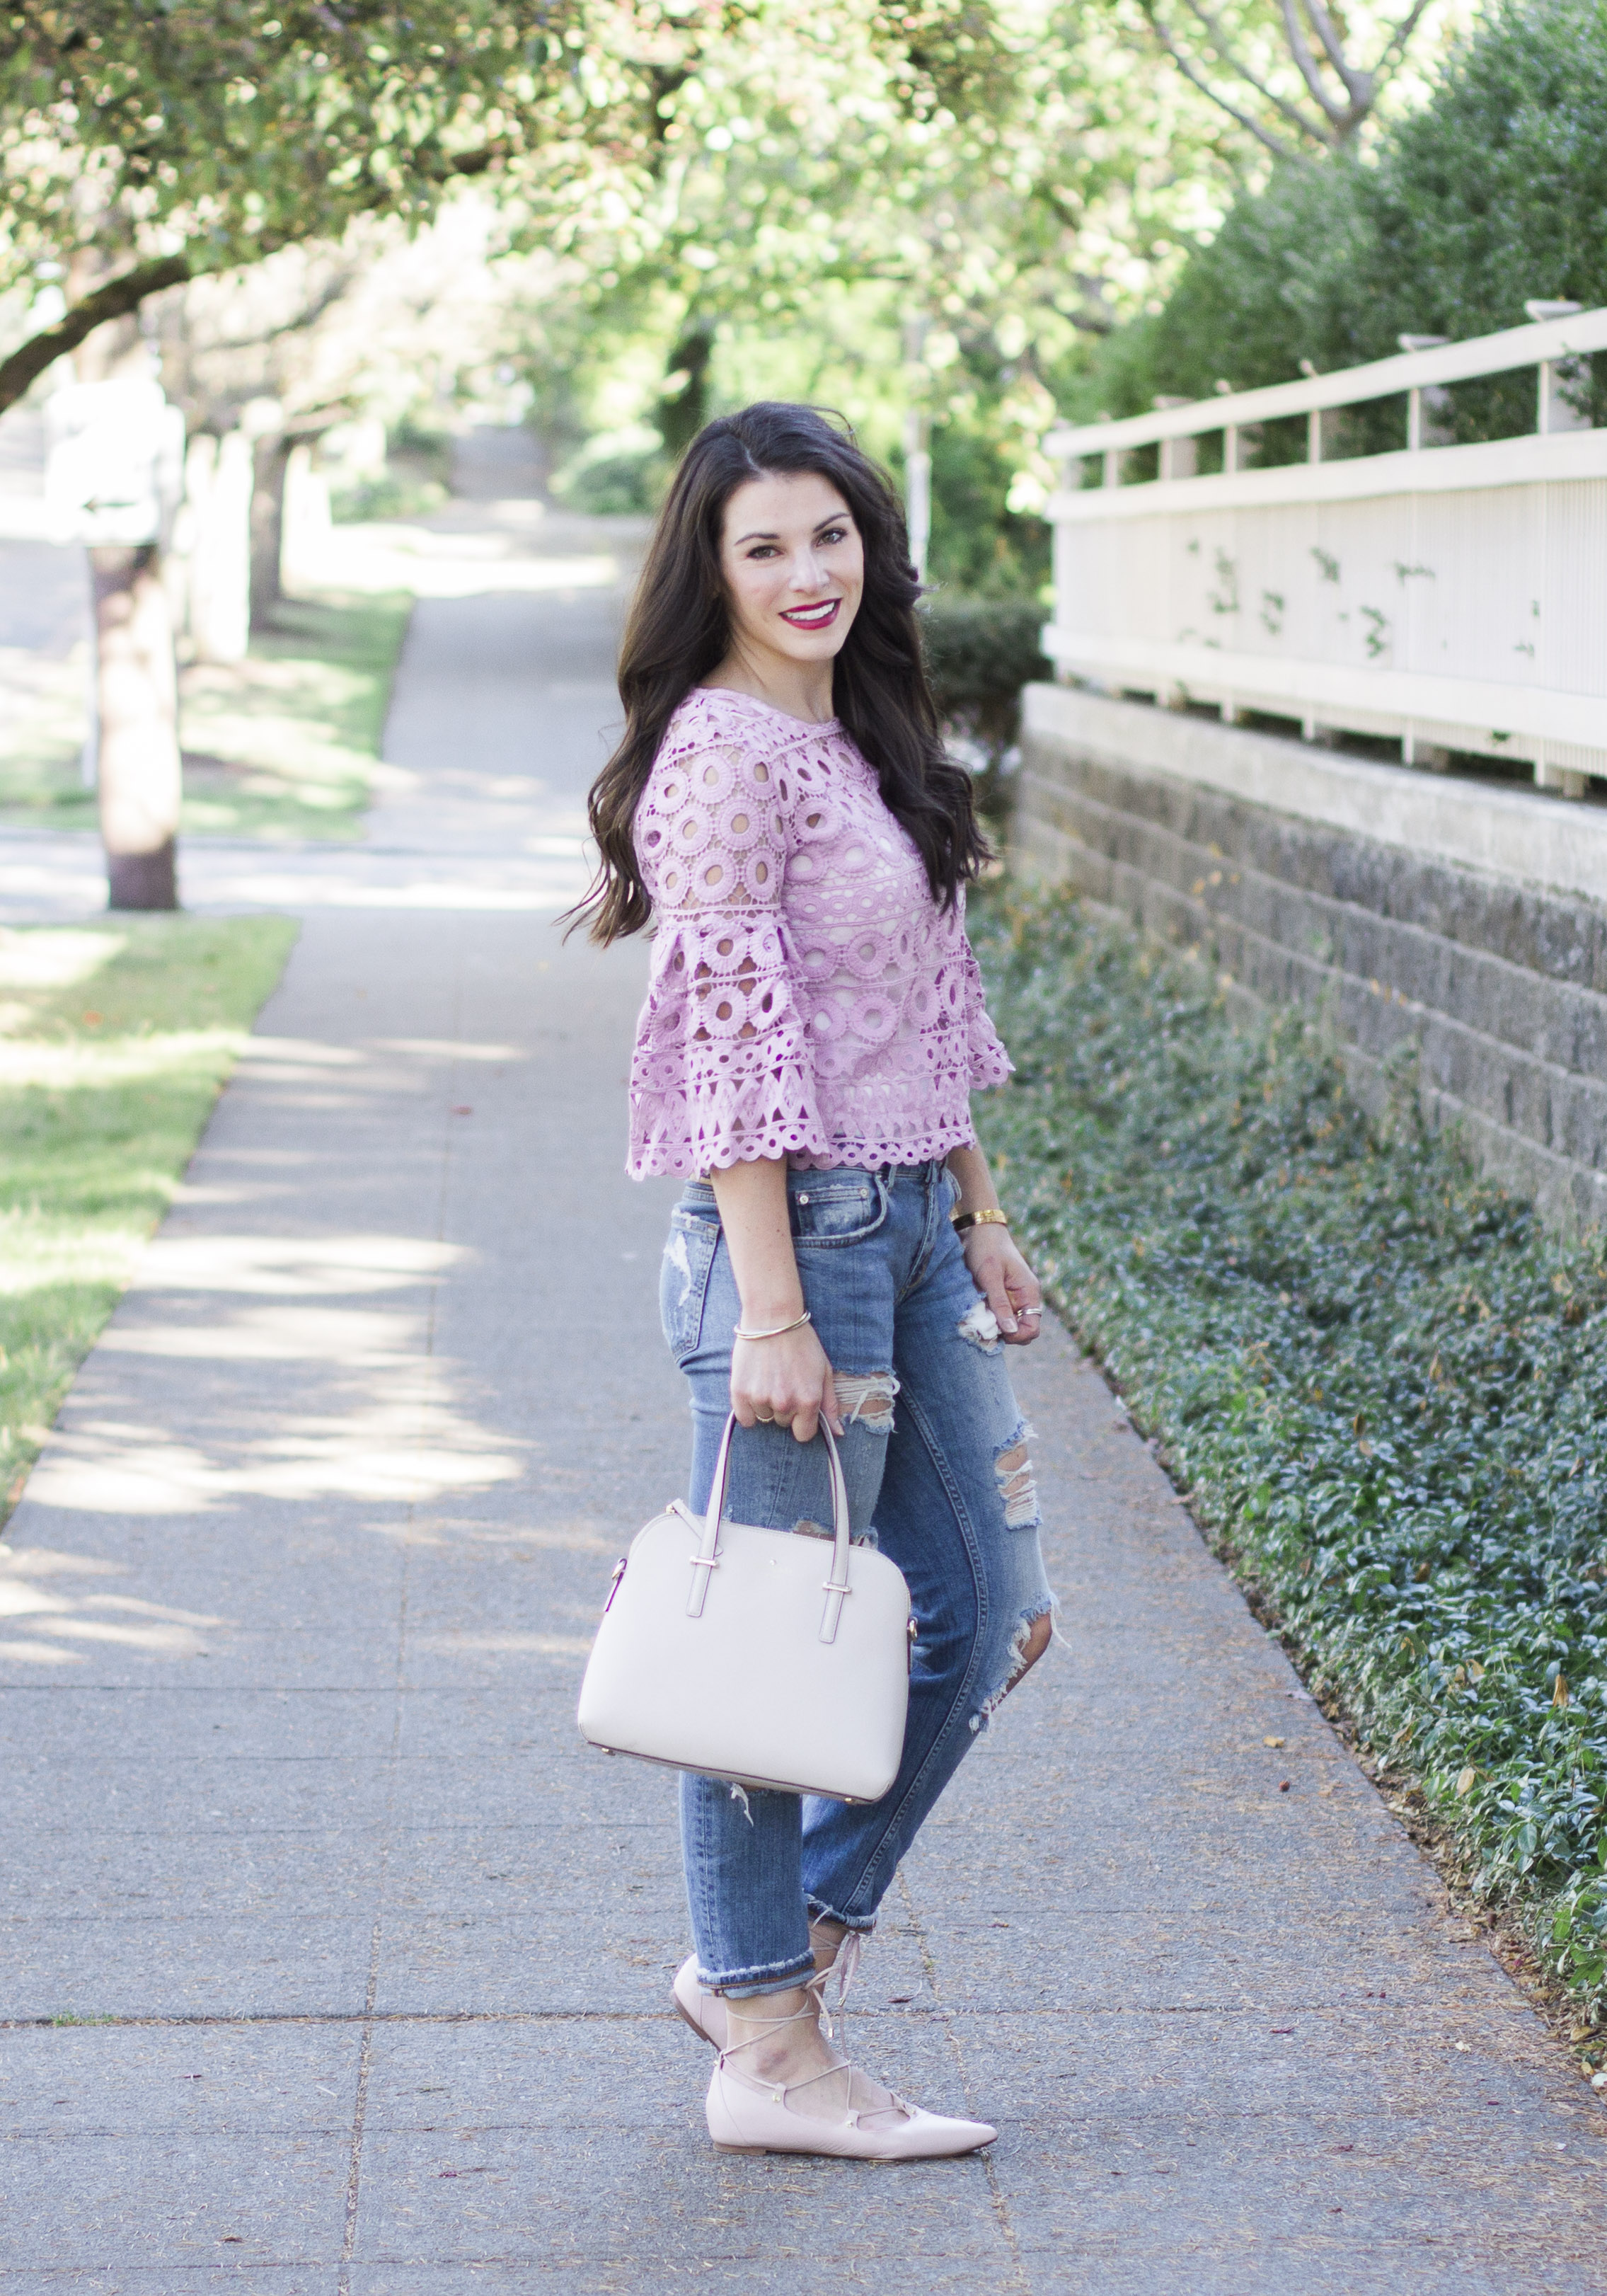 How to mix feminine and edgy apparel, Style Mafia Kiana Lace Top, Destroyed Skinny Jeans, Halogen Owen Ghillie Flats, Kate Spade Cedar Street Maise, Cute Fall Outfits.